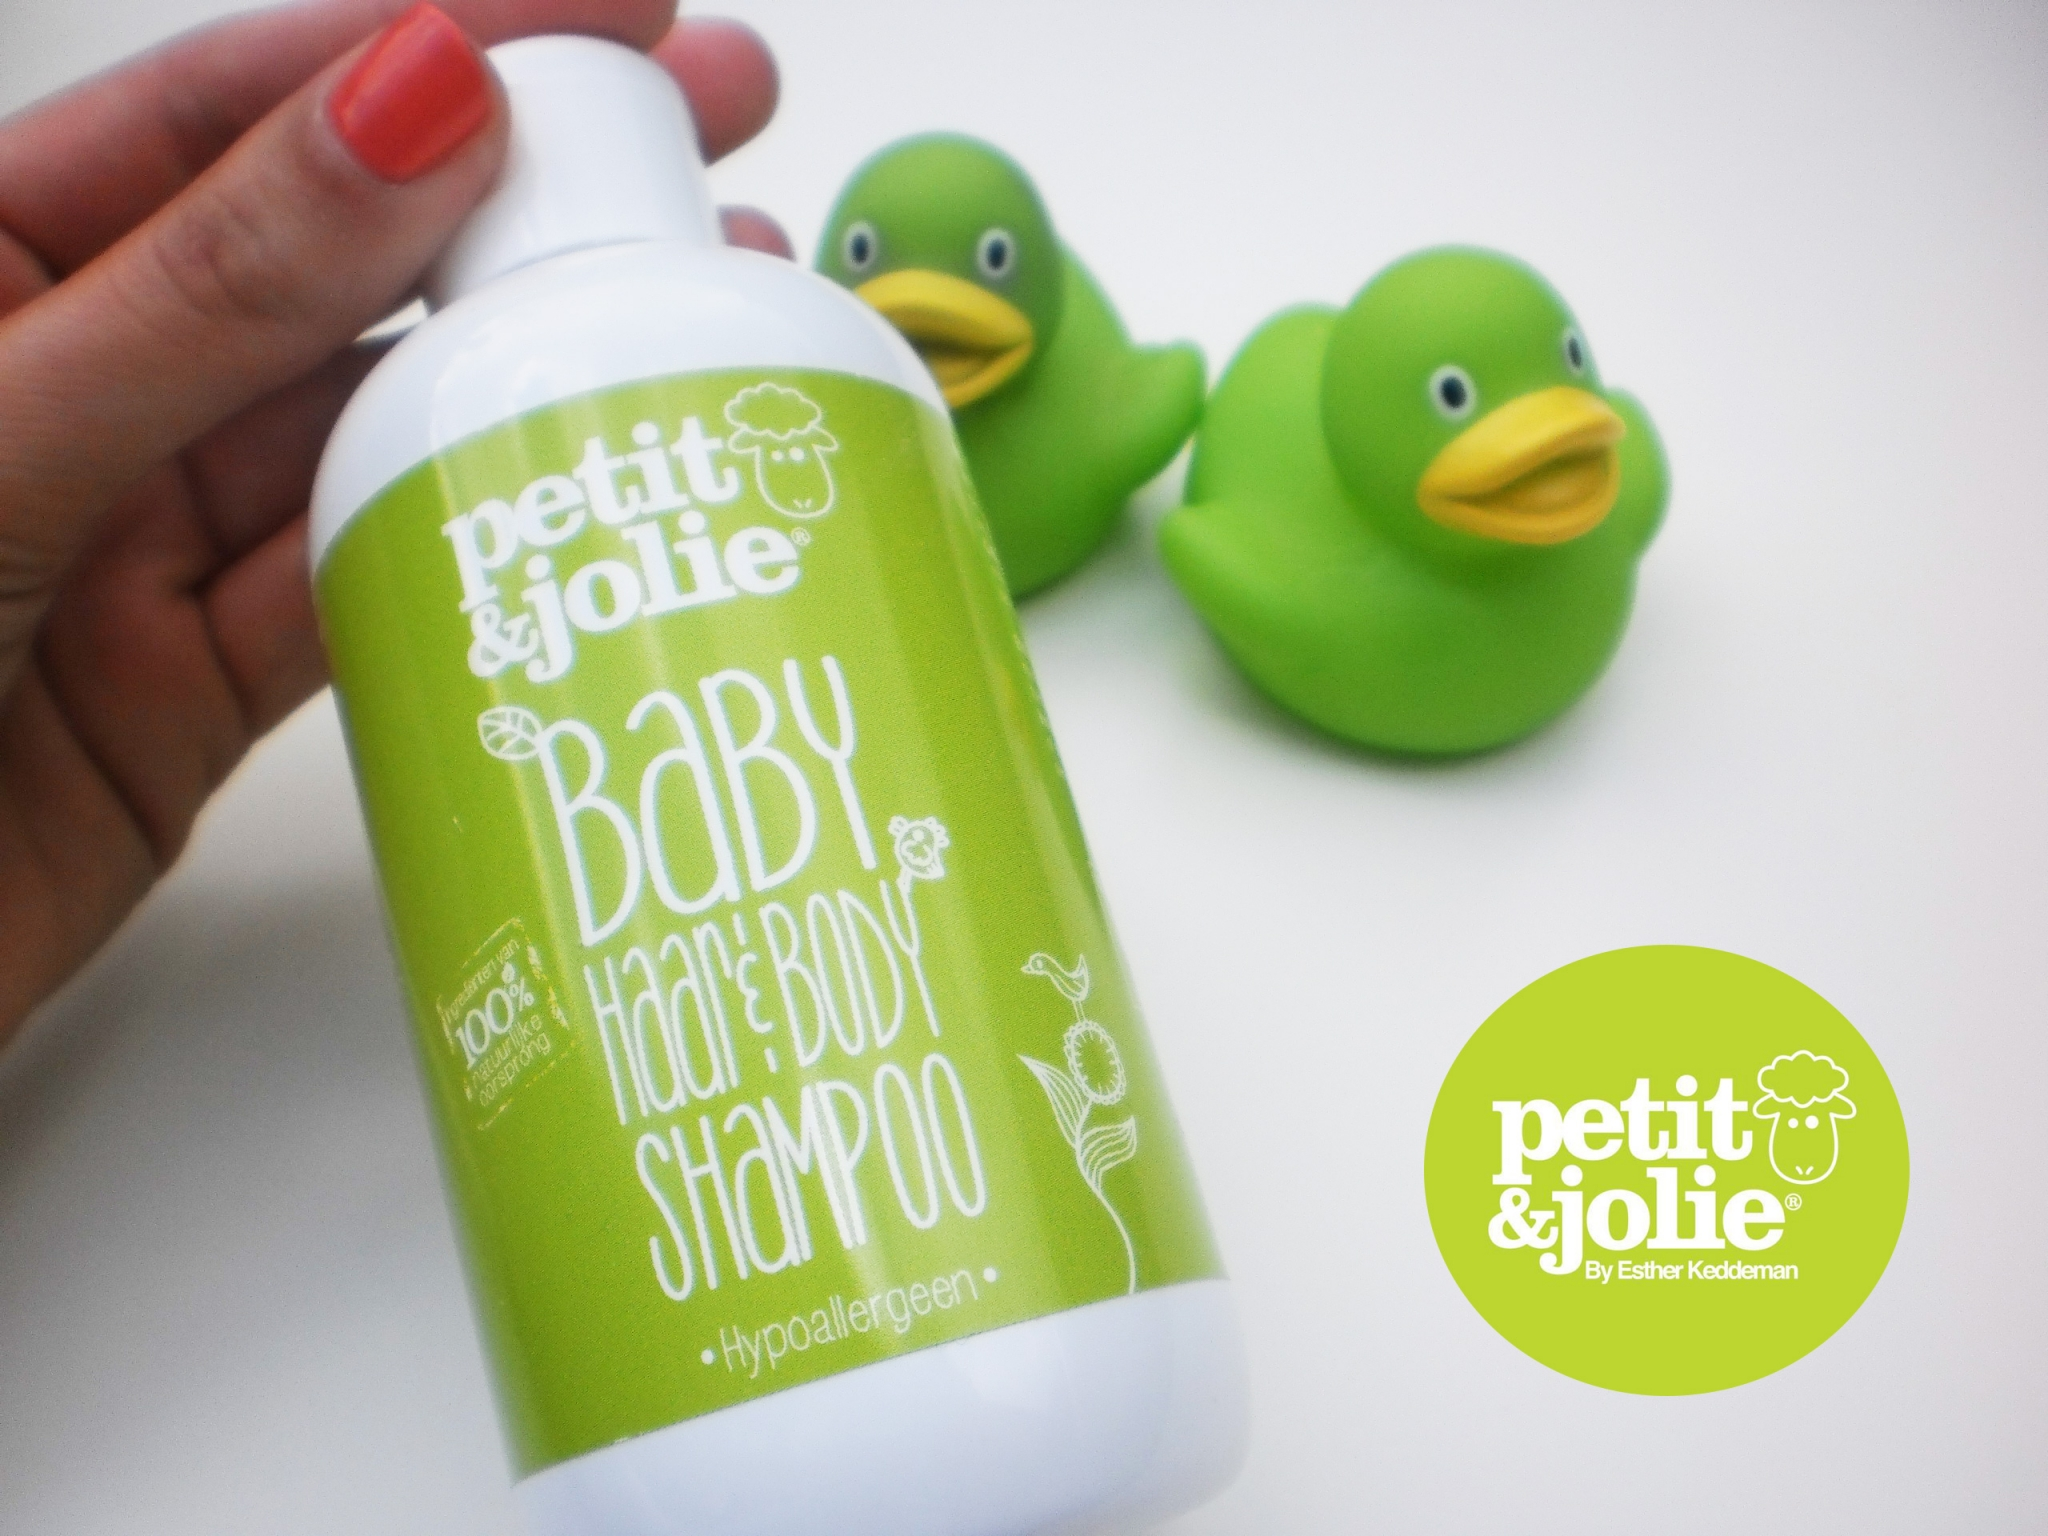 Mamapraat: Review Petit & Jolie Haar en Body Shampoo